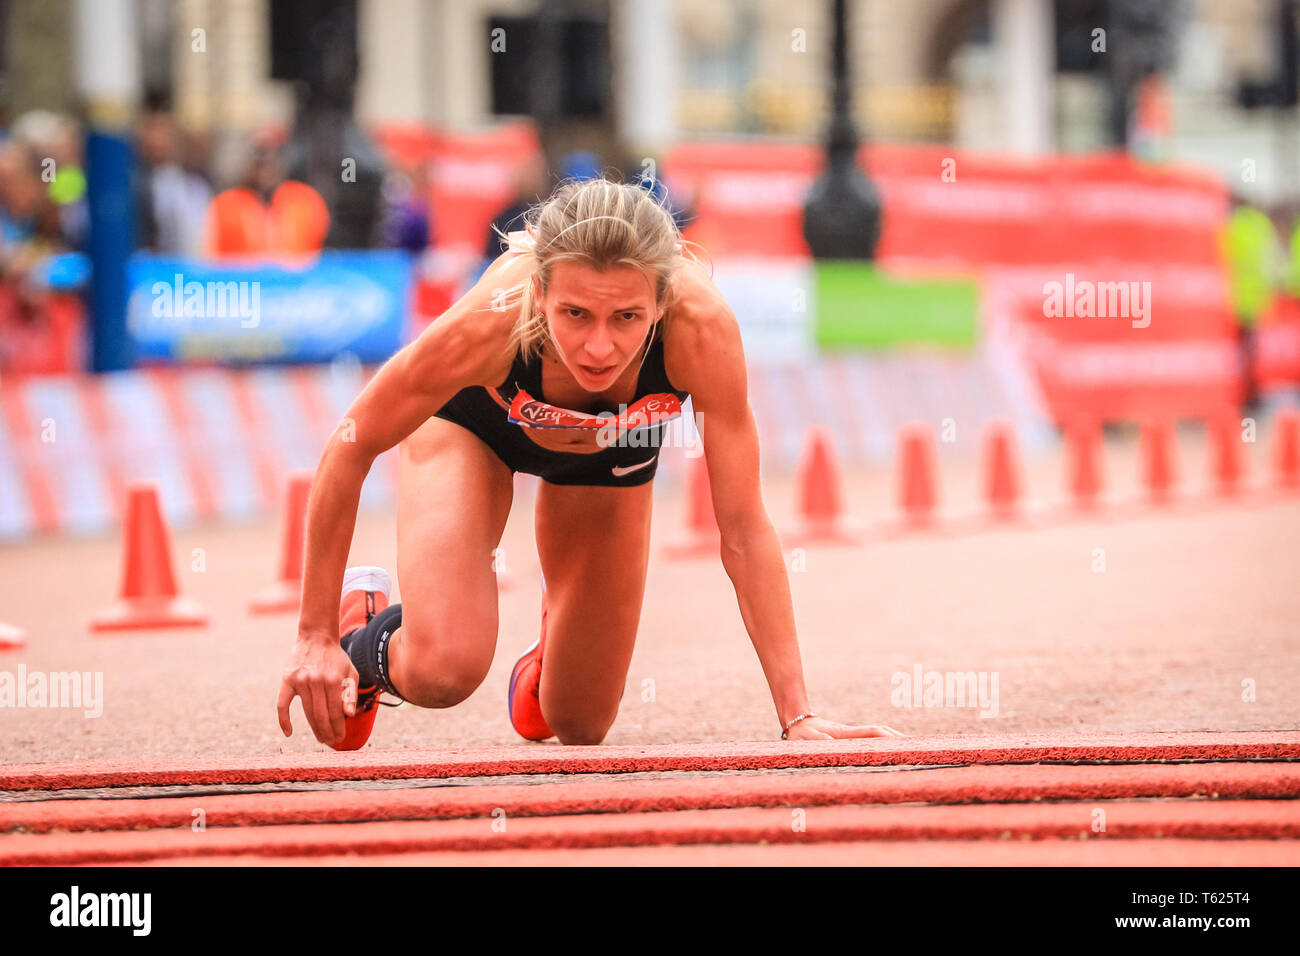 London, UK. 28th April 2019. Hayley  Carruthers (GBR) finishes the race in 2.33.59, but collapses just before the finish and crawls over the finish line. The Mall with the finish line, Elite Men's and Women's races. The world's top runners once again assemble in for the London marathon, to contest the 39th race. Credit: Imageplotter/Alamy Live News Stock Photo